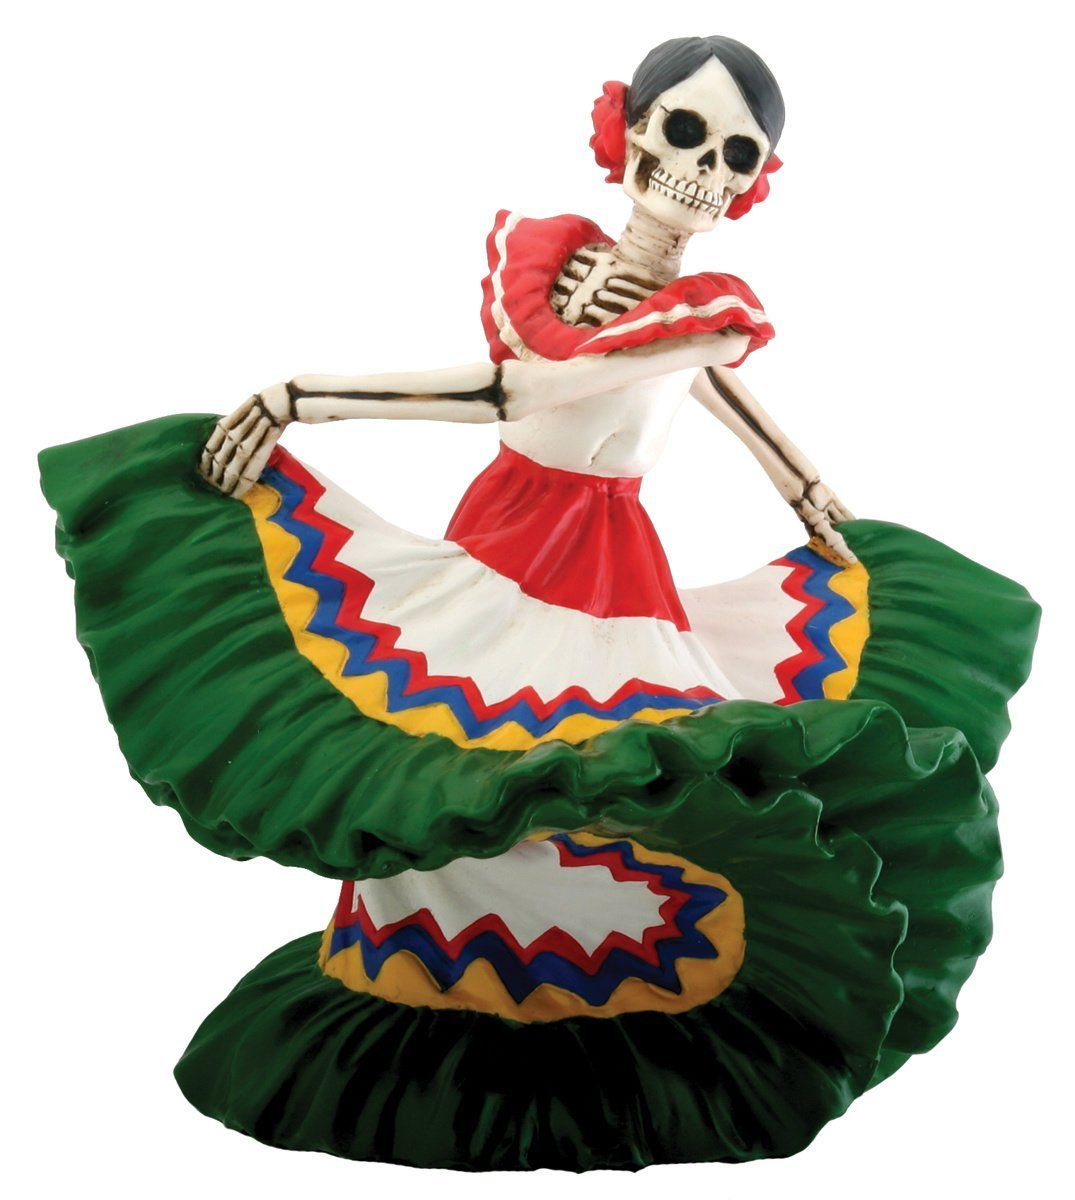 Day of the Dead Dancing Senorita (H: 5.5' x L: 6' x W: 4.5' and 2.25 lbs) > Startling review available here  : Christmas Decorations